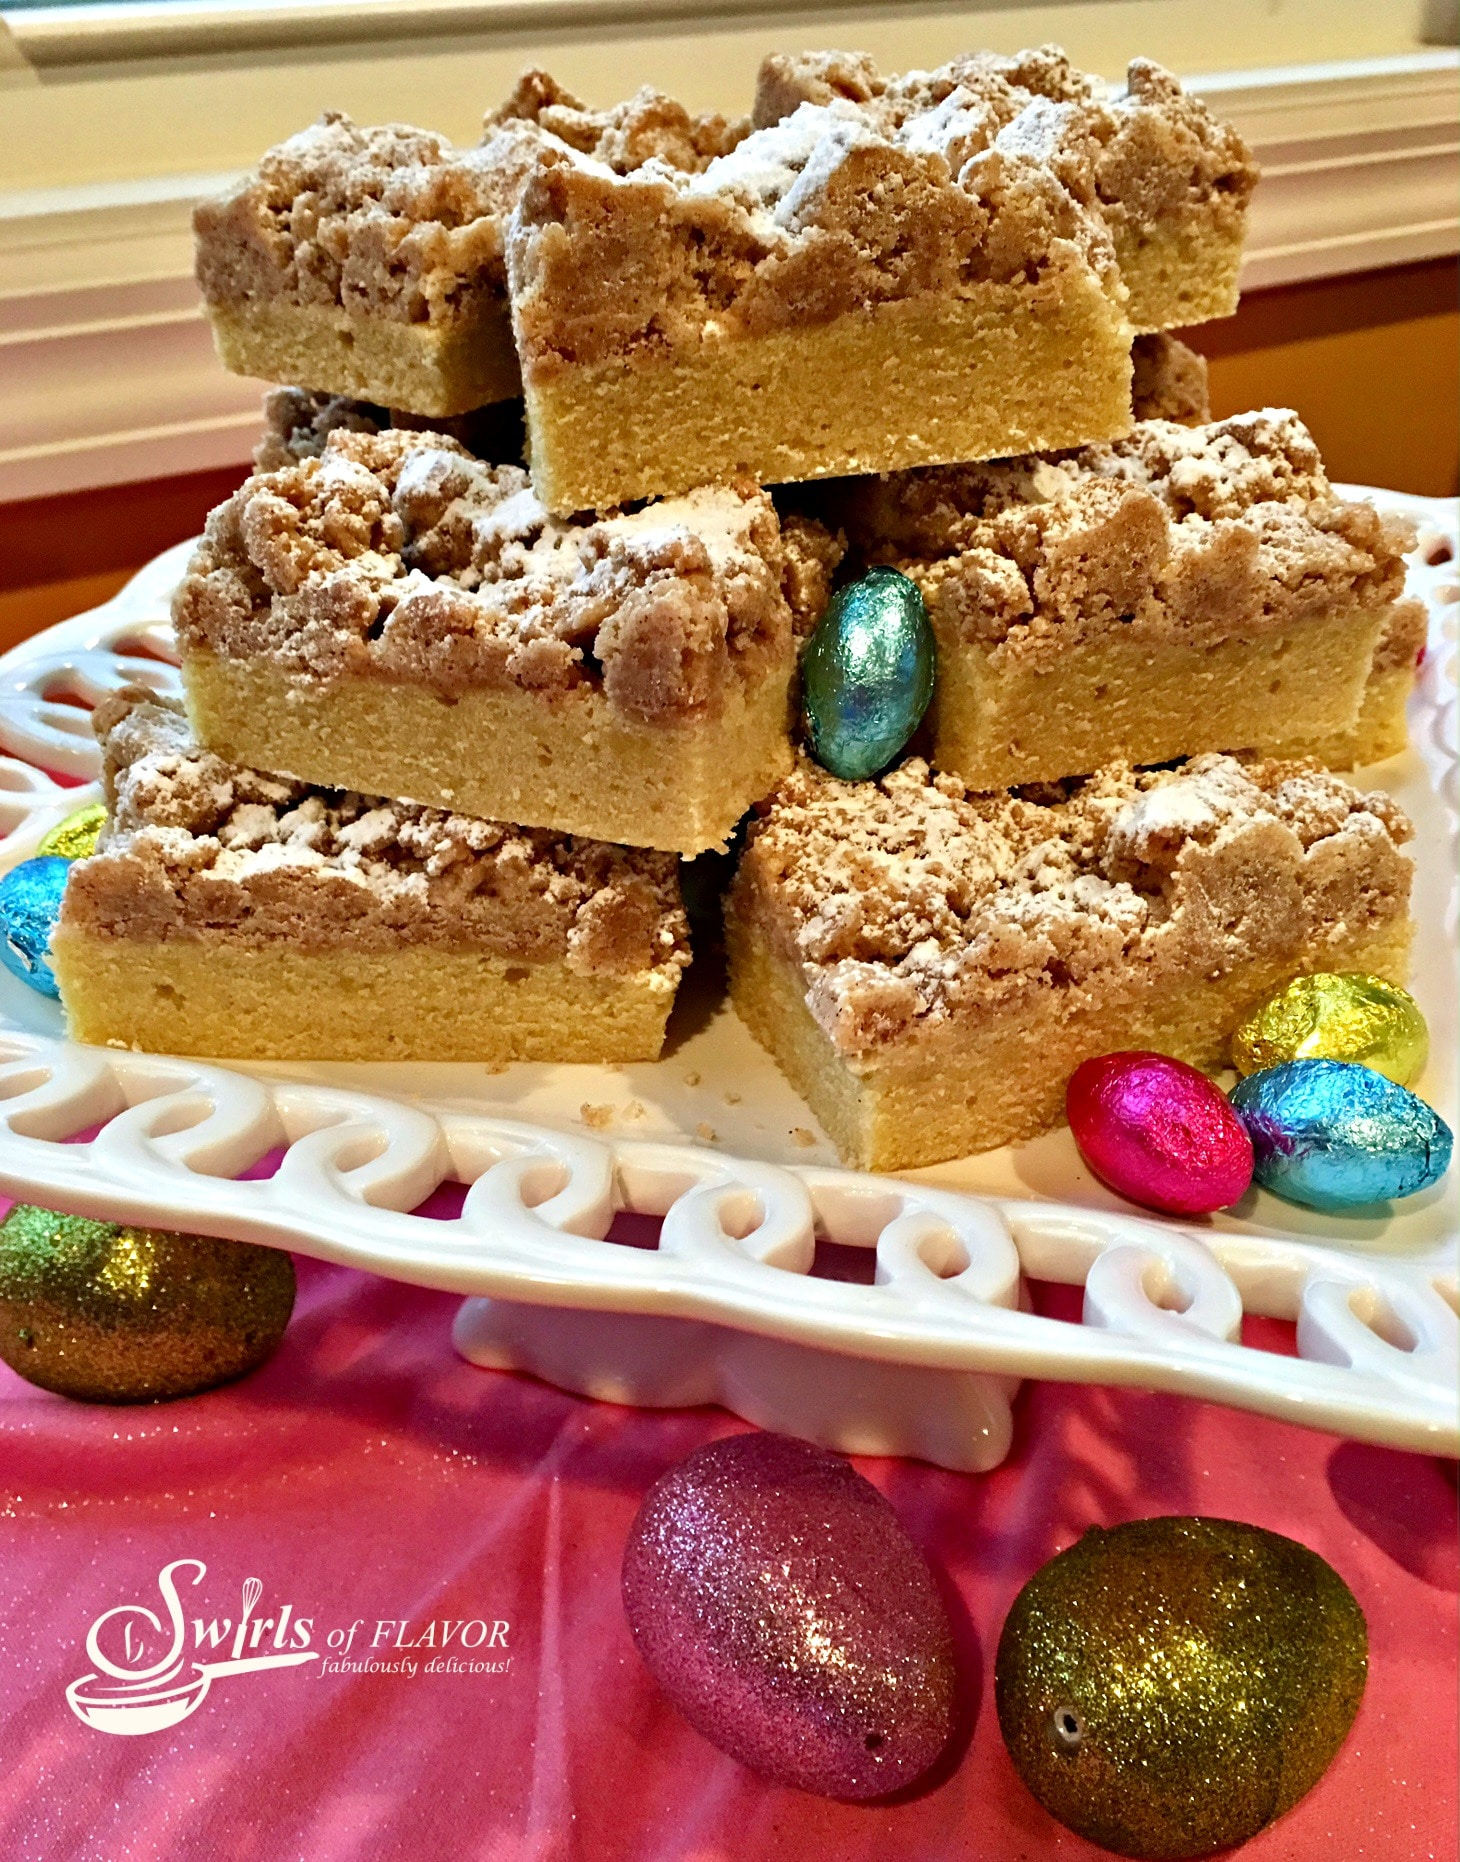 crumb cake pieces stacked on white platter with chocolate Easter egg candy